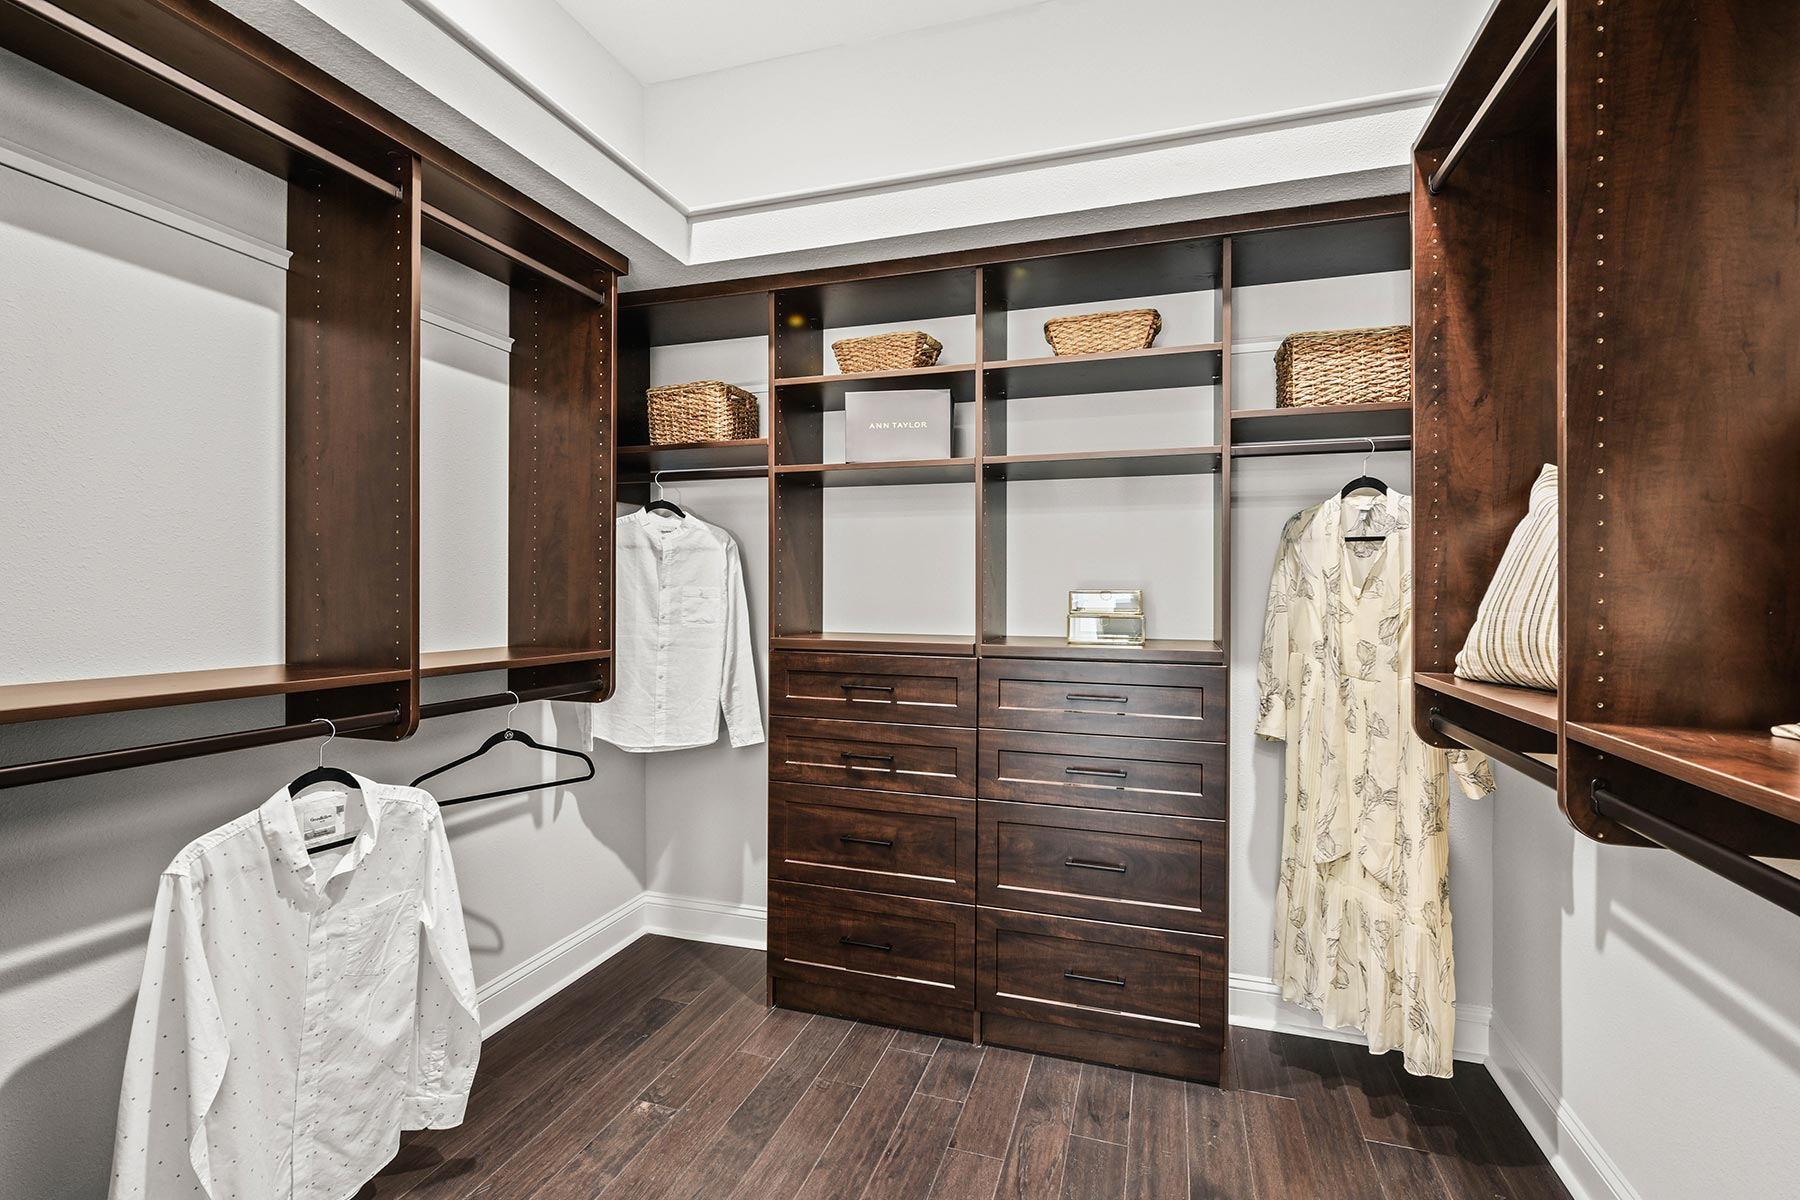 Bridge Plan Closet at RiverTown - WaterSong in St. Johns Florida by Mattamy Homes